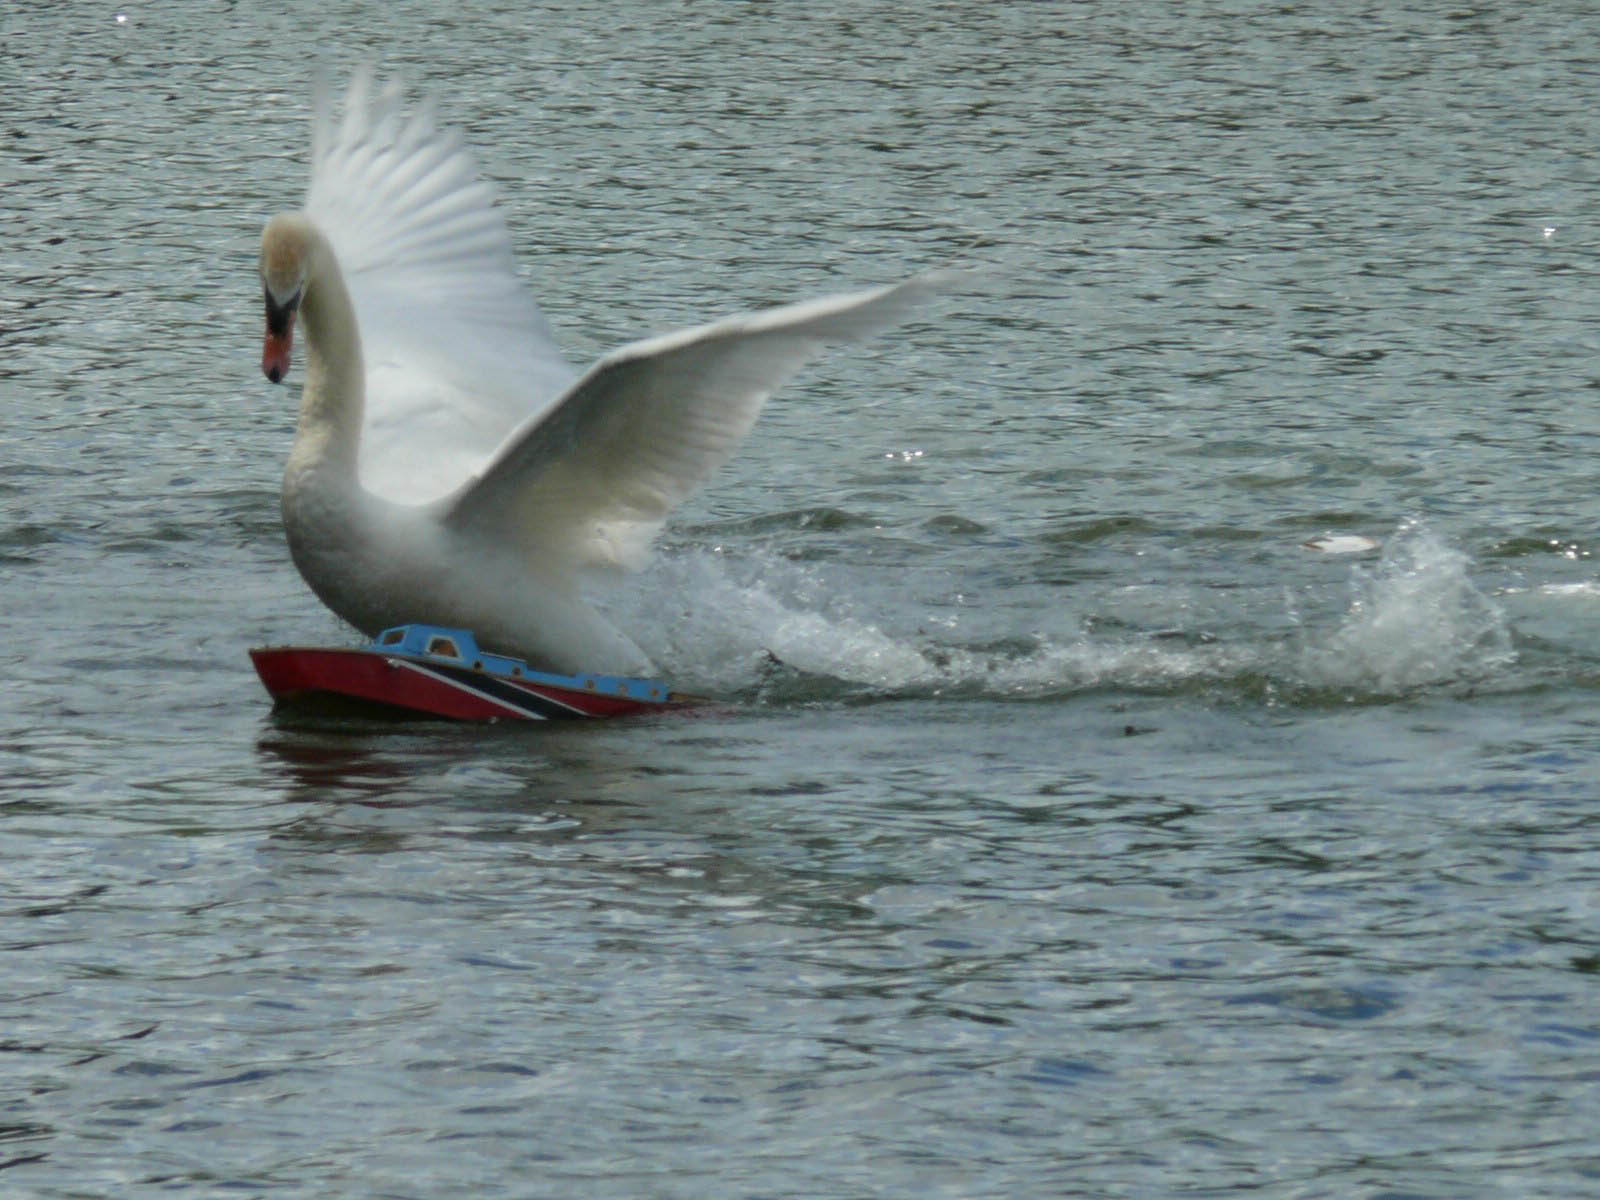 Swan attacks model boat